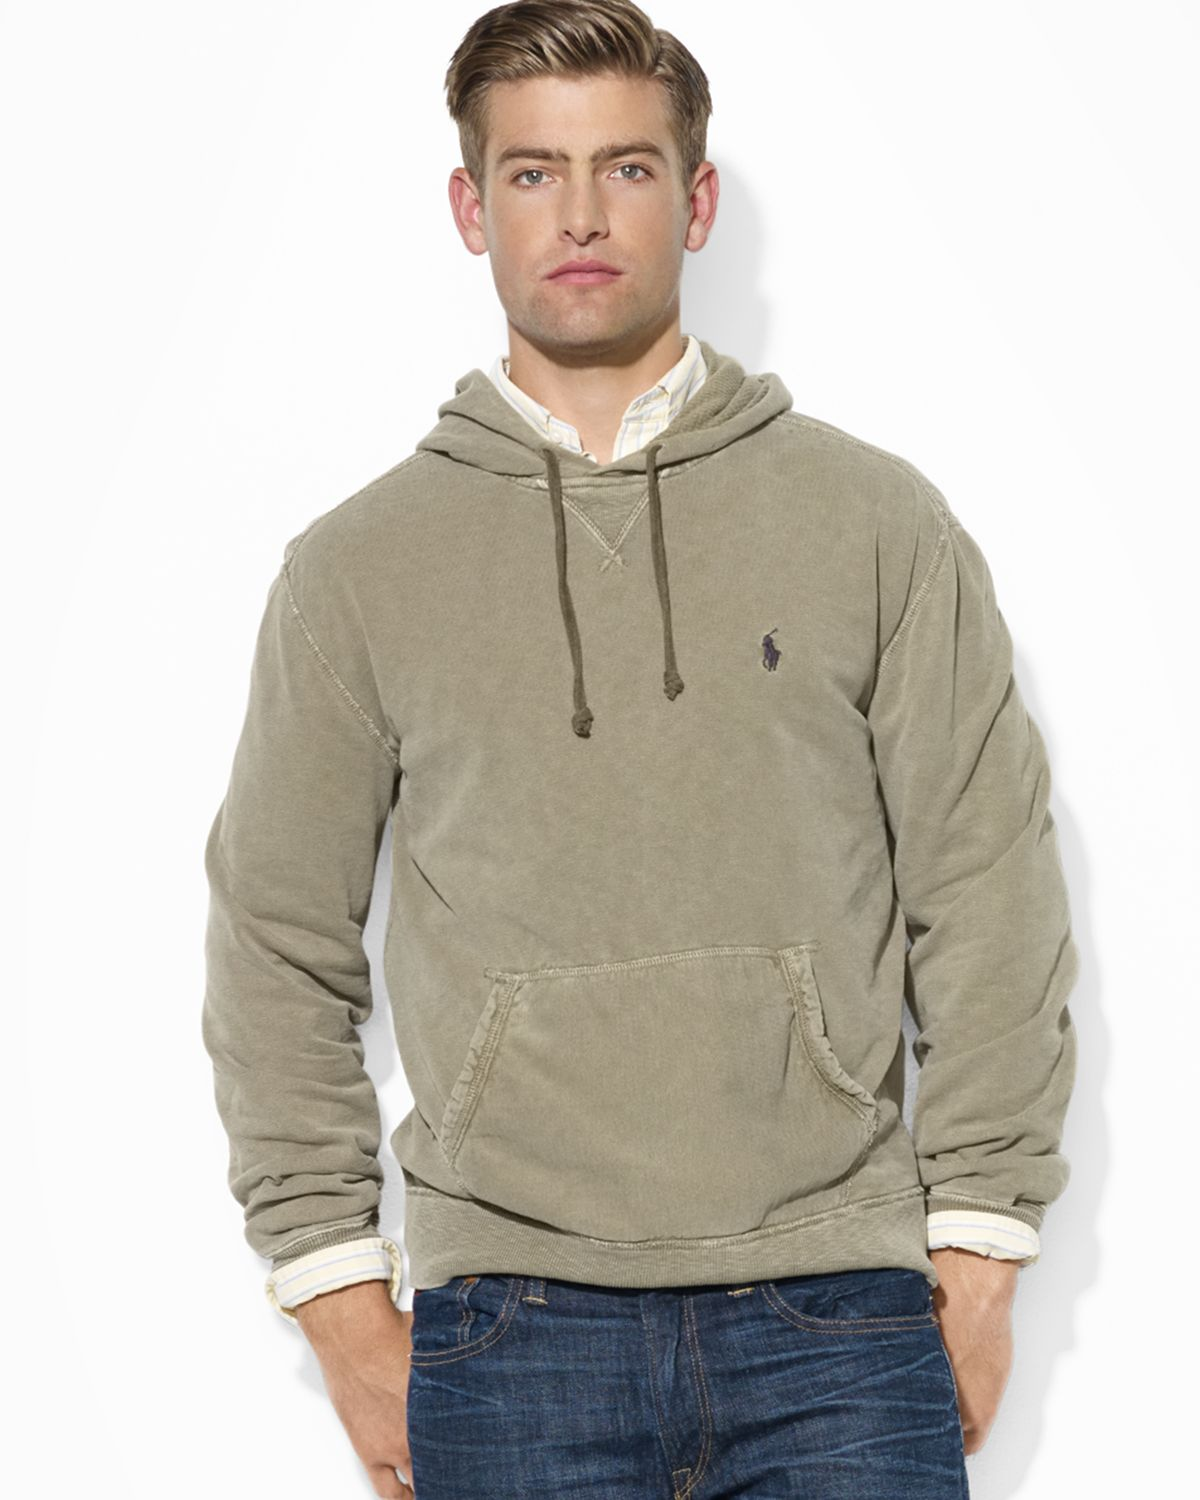 3a36e684aca0 ... order lyst ralph lauren polo patina french terry pullover hoodie in  1adcc 7ba36